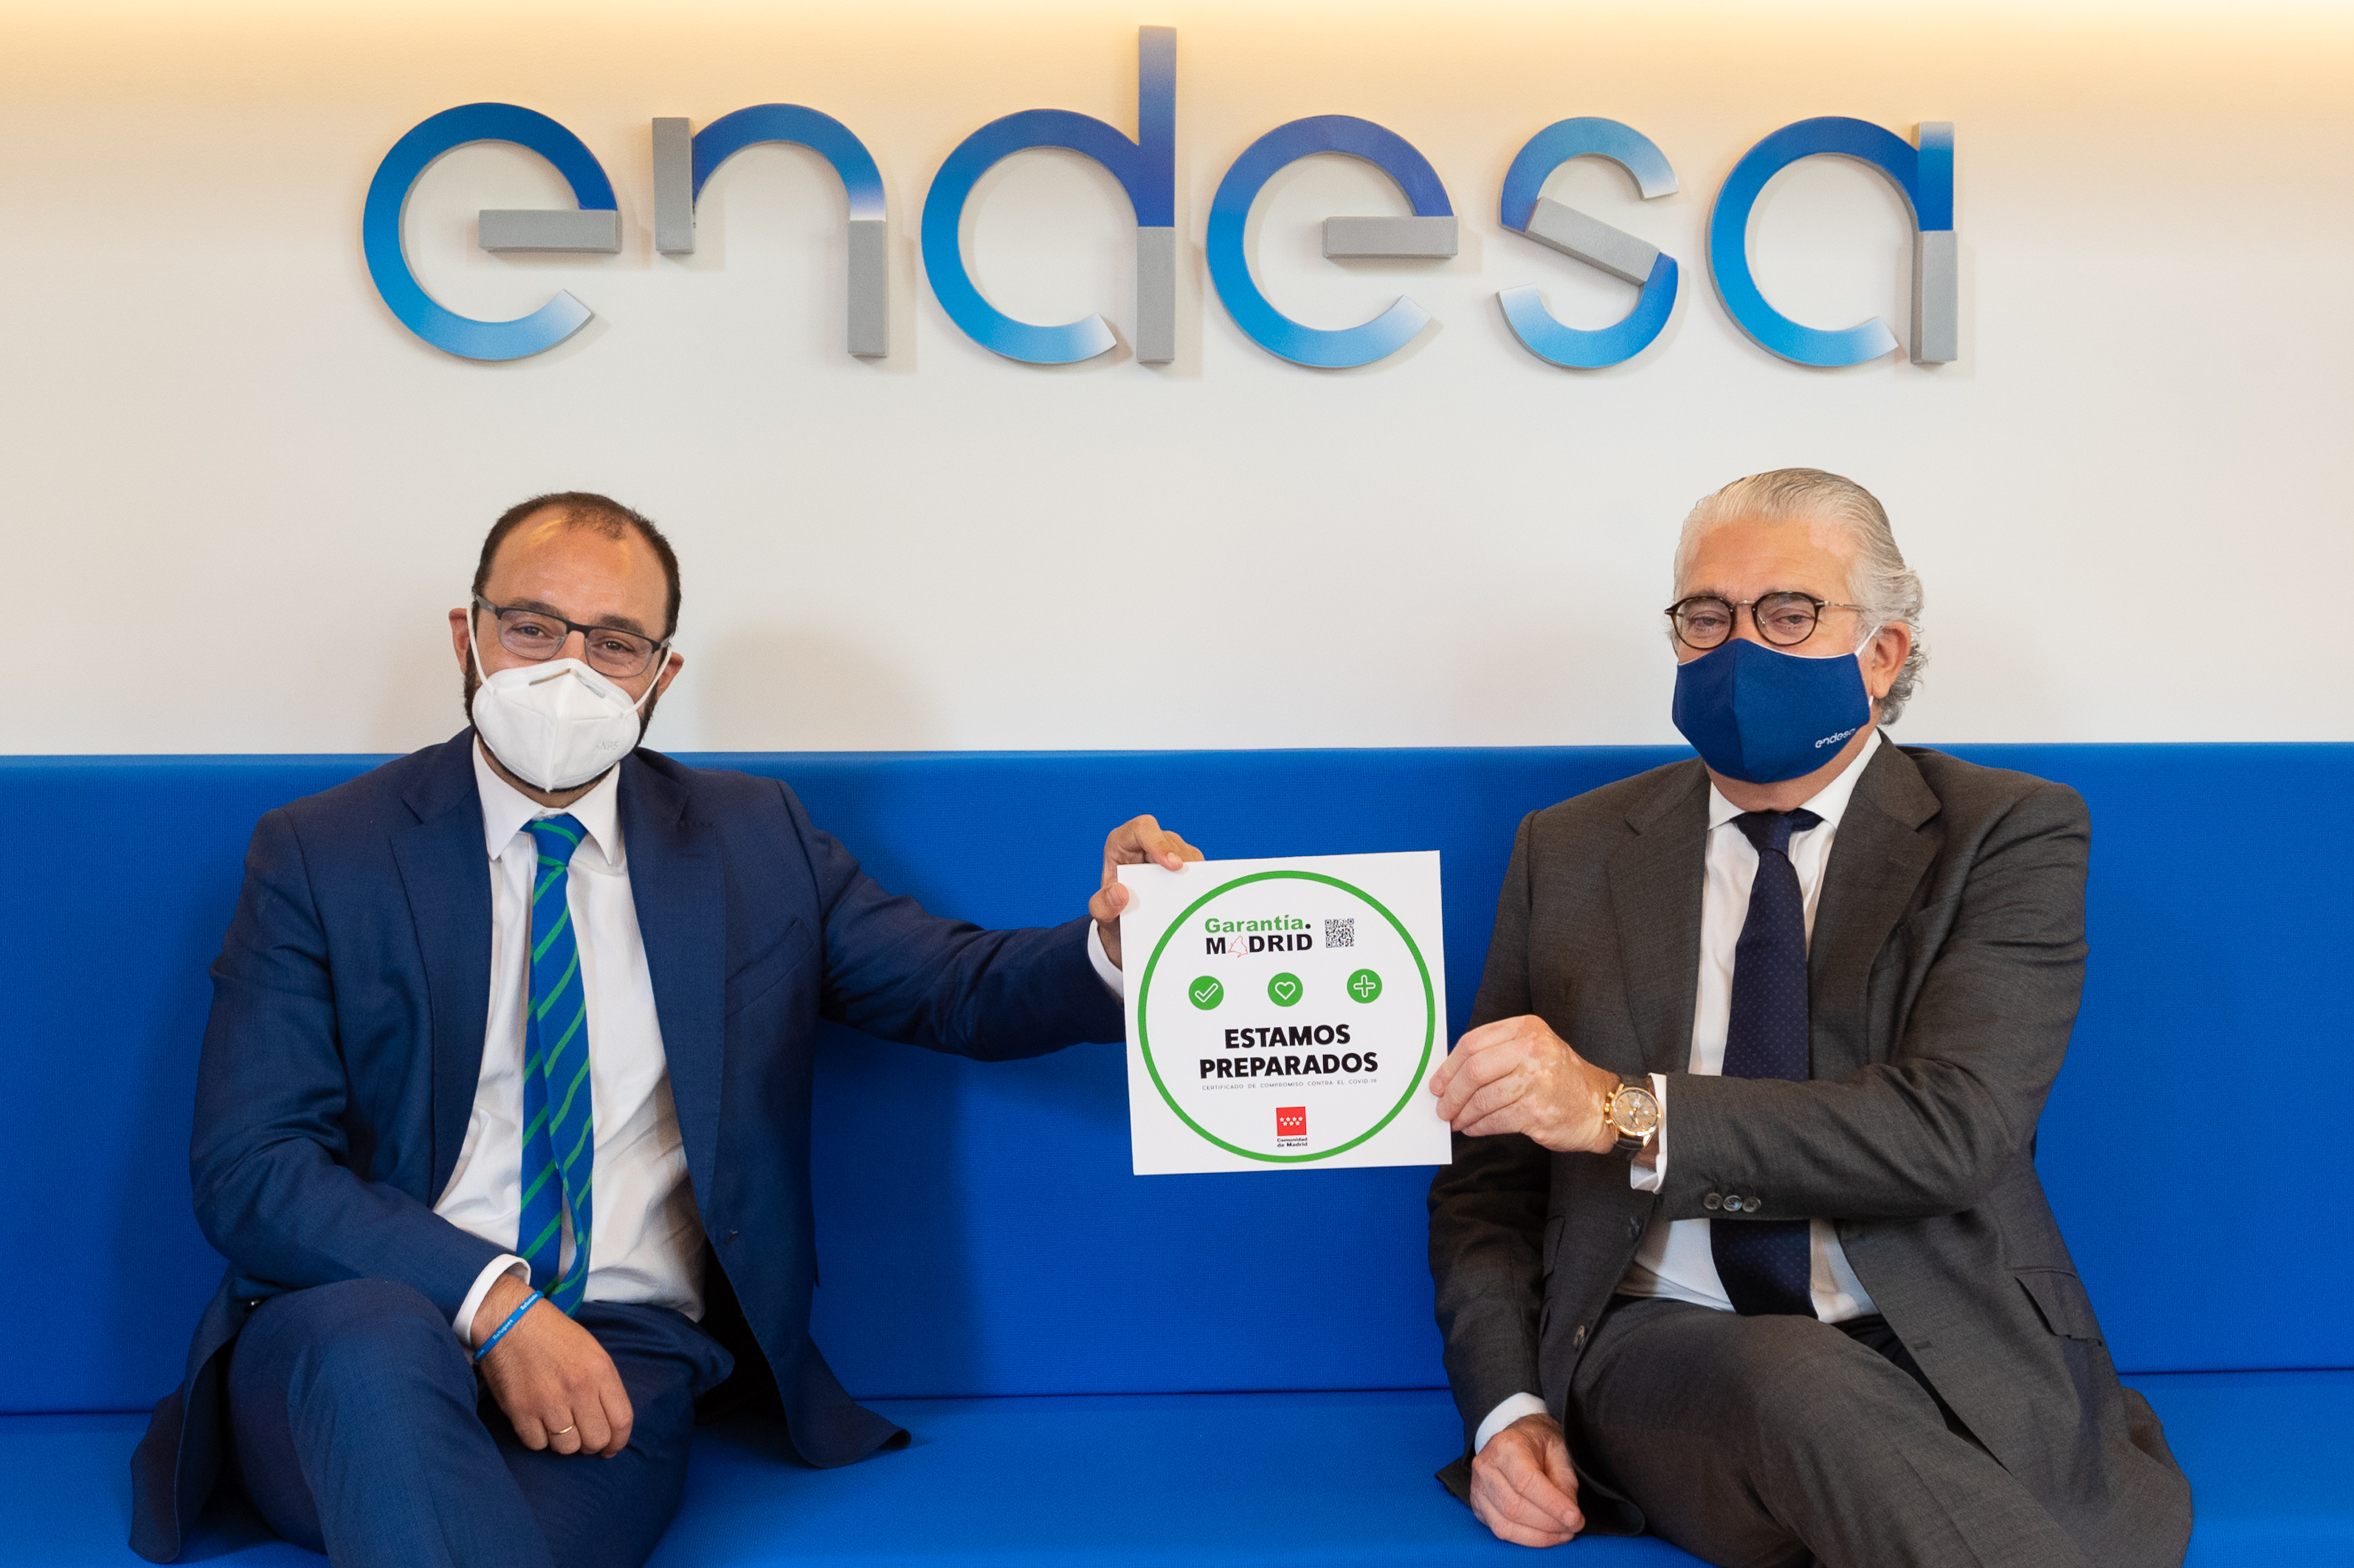 The Minister of Economy, Employment and Competitiveness of the Regional Government of the Community of Madrid, Manuel Giménez, presents the Madrid Guarantee seal to the Endesa CEO, José Bogas, at the new Endesa retail office in Calle Ortega y Gasset, Madrid.